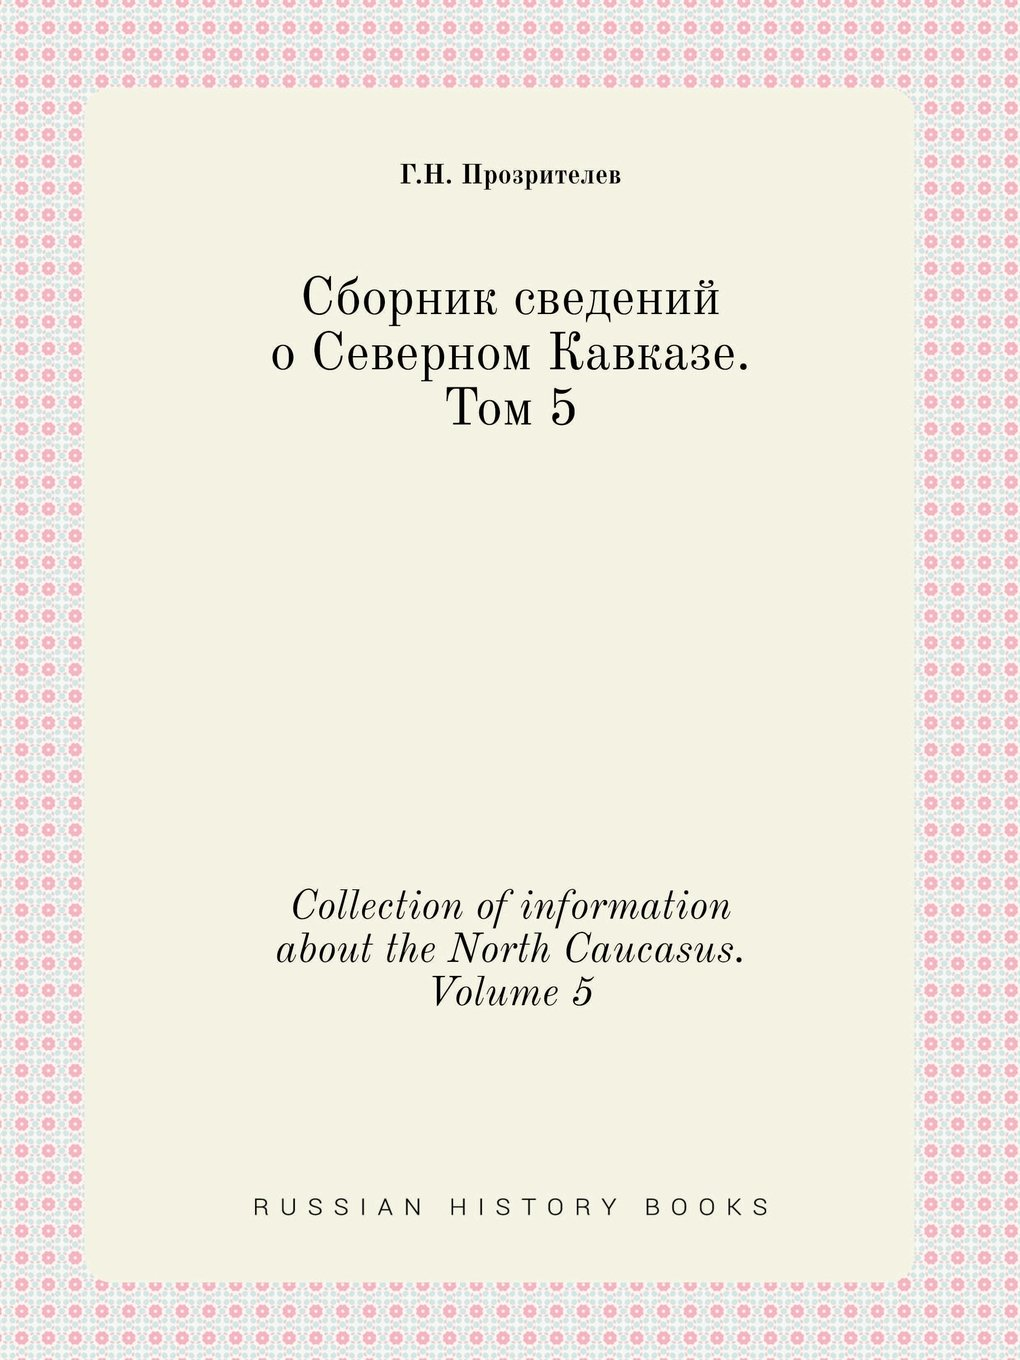 Collection of information about the North Caucasus. Volume 5 (Russian Edition) PDF